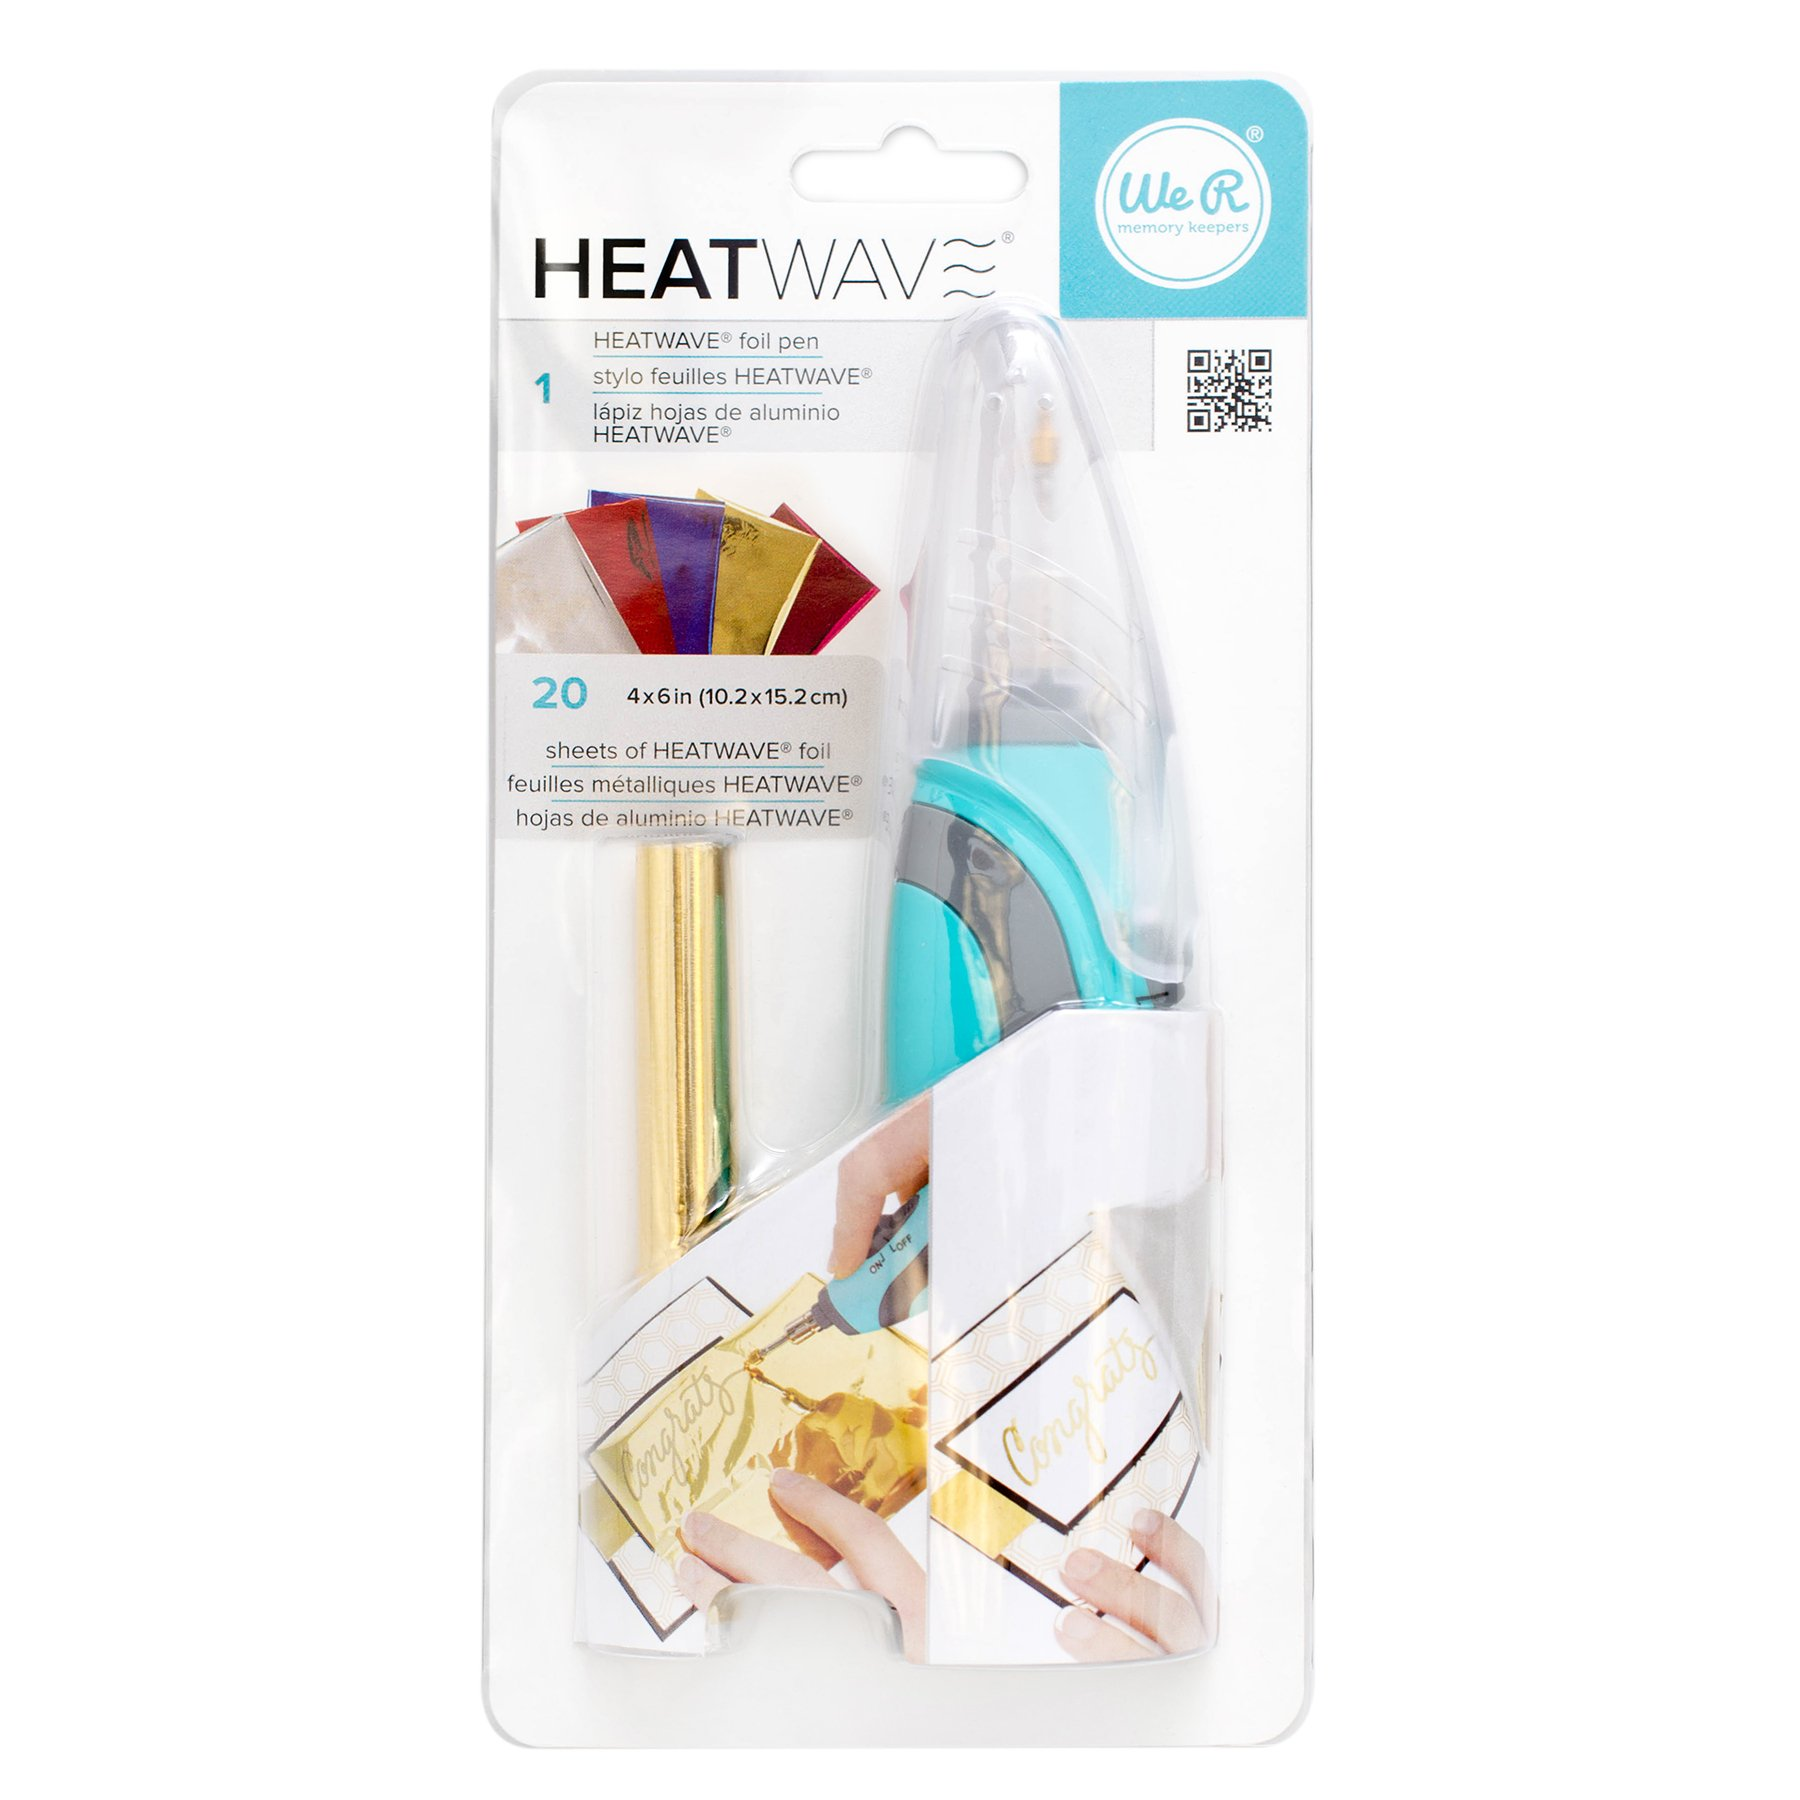 American Crafts Heatwave Pen Starter Kit by We R Memory Keepers | Includes Heatwave Pen and 20 4 x 6-inch foil sheets in various colors